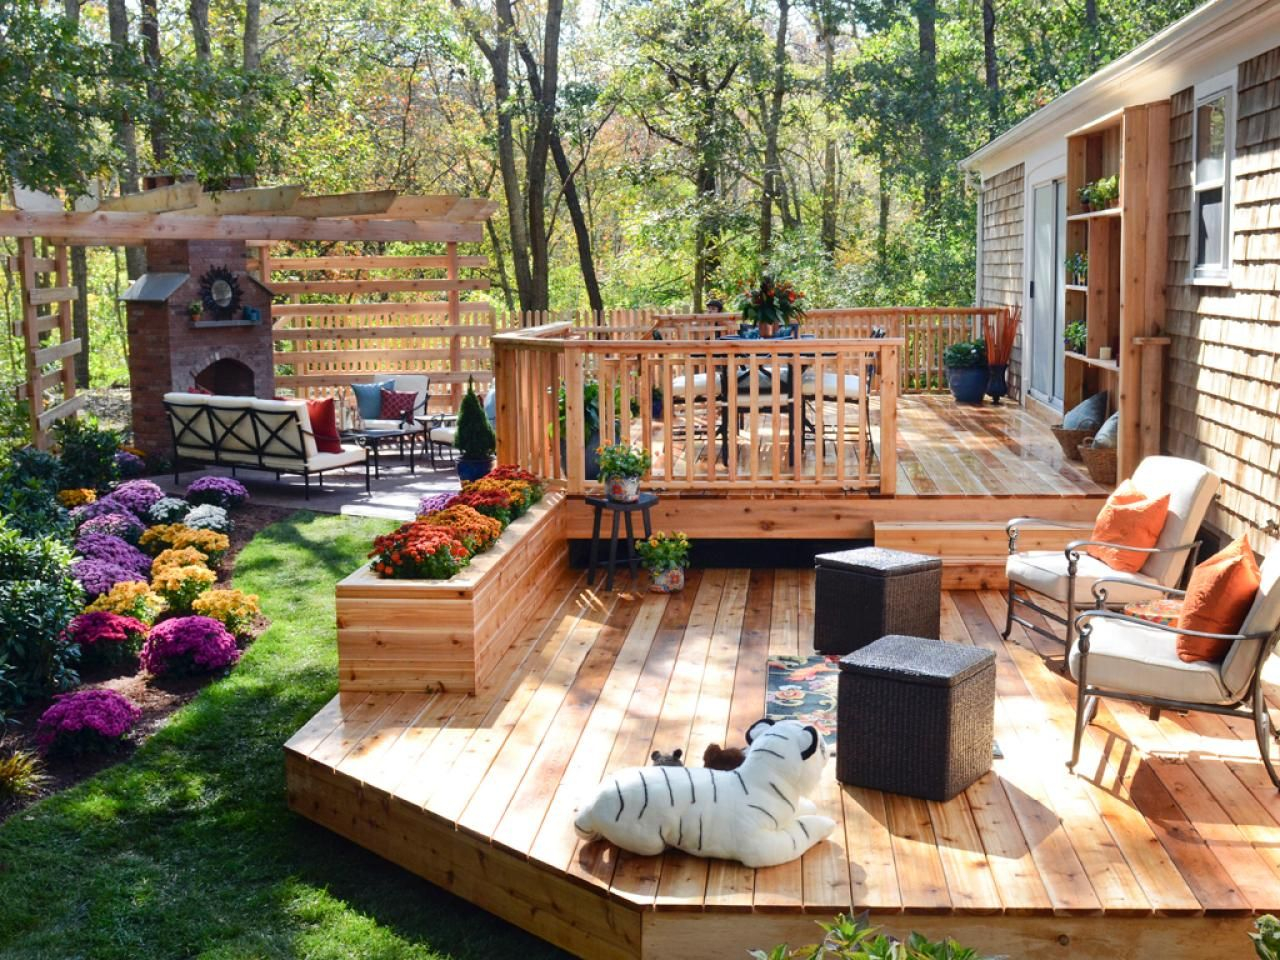 15 Before And After Backyard Makeovers Back Yard Jardines Pisos inside Hgtv Backyard Ideas